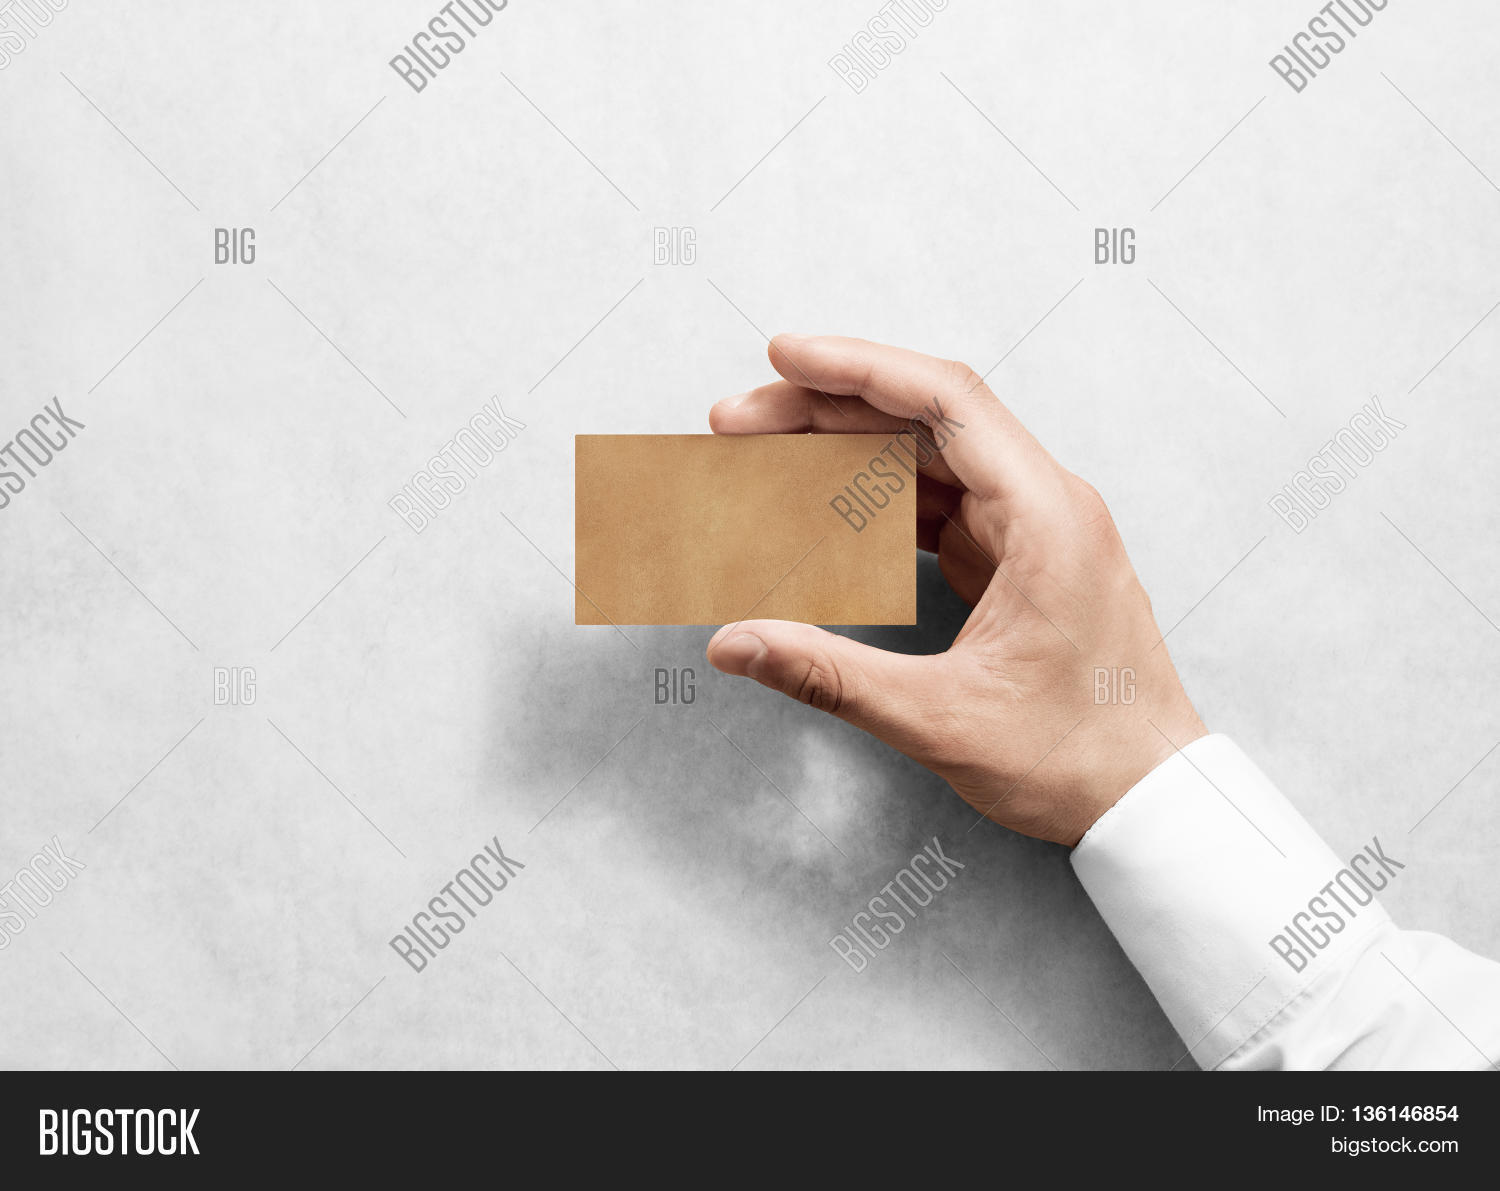 Hand Hold Blank Plain Craft Image & Photo | Bigstock